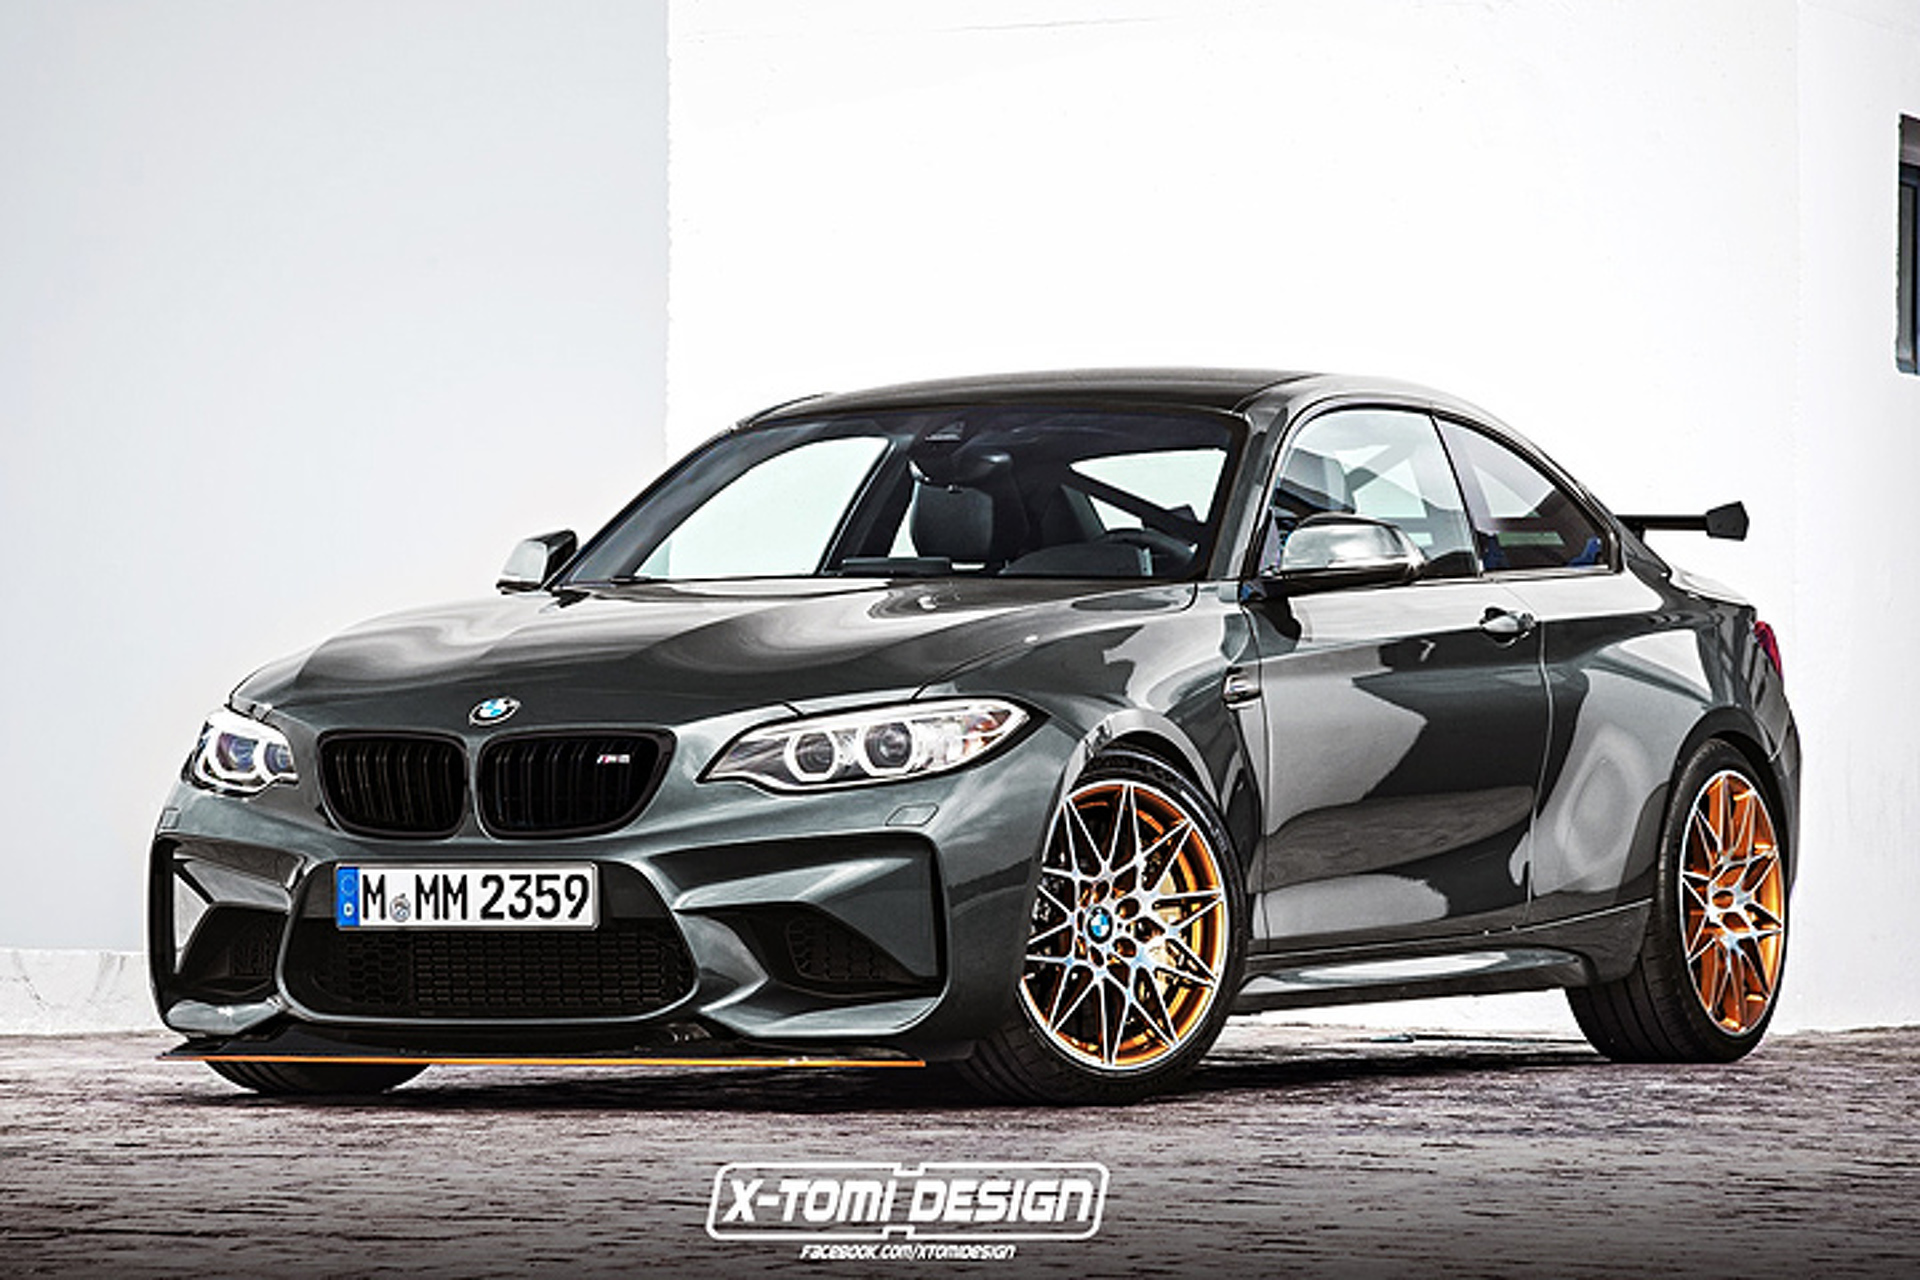 BMW M2 Rumored to Spawn a 400HP GTS Version